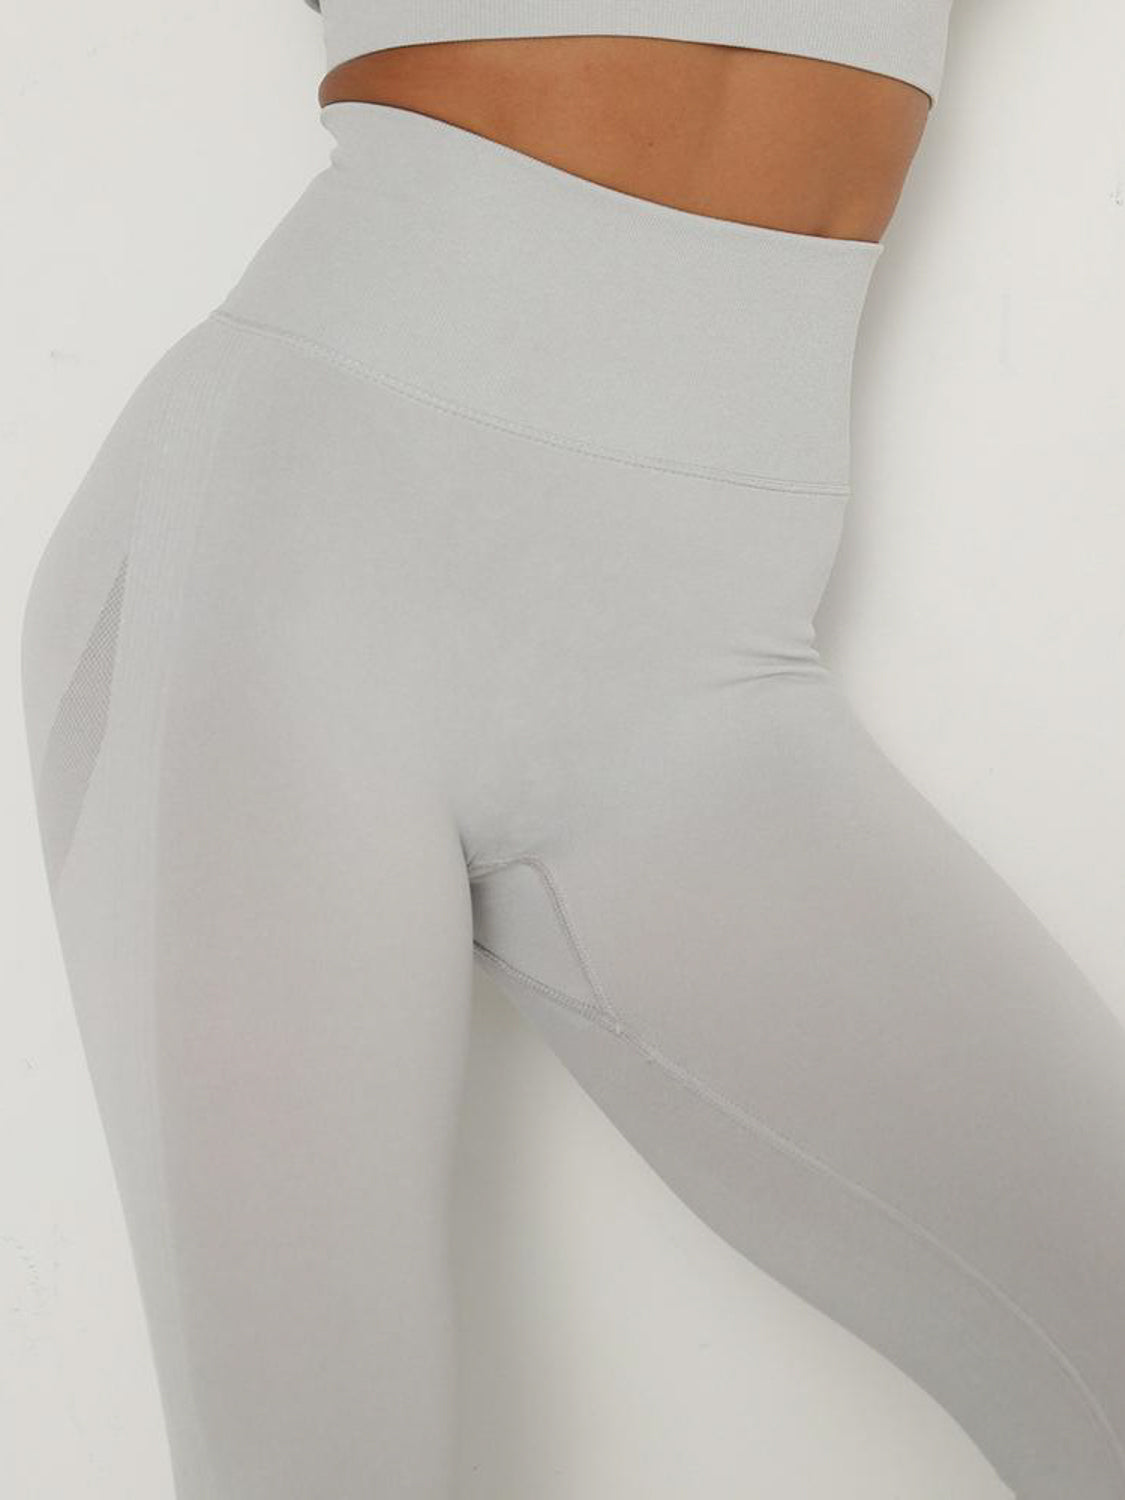 MOVI Pulse Contour Full Length Leggings - Silver